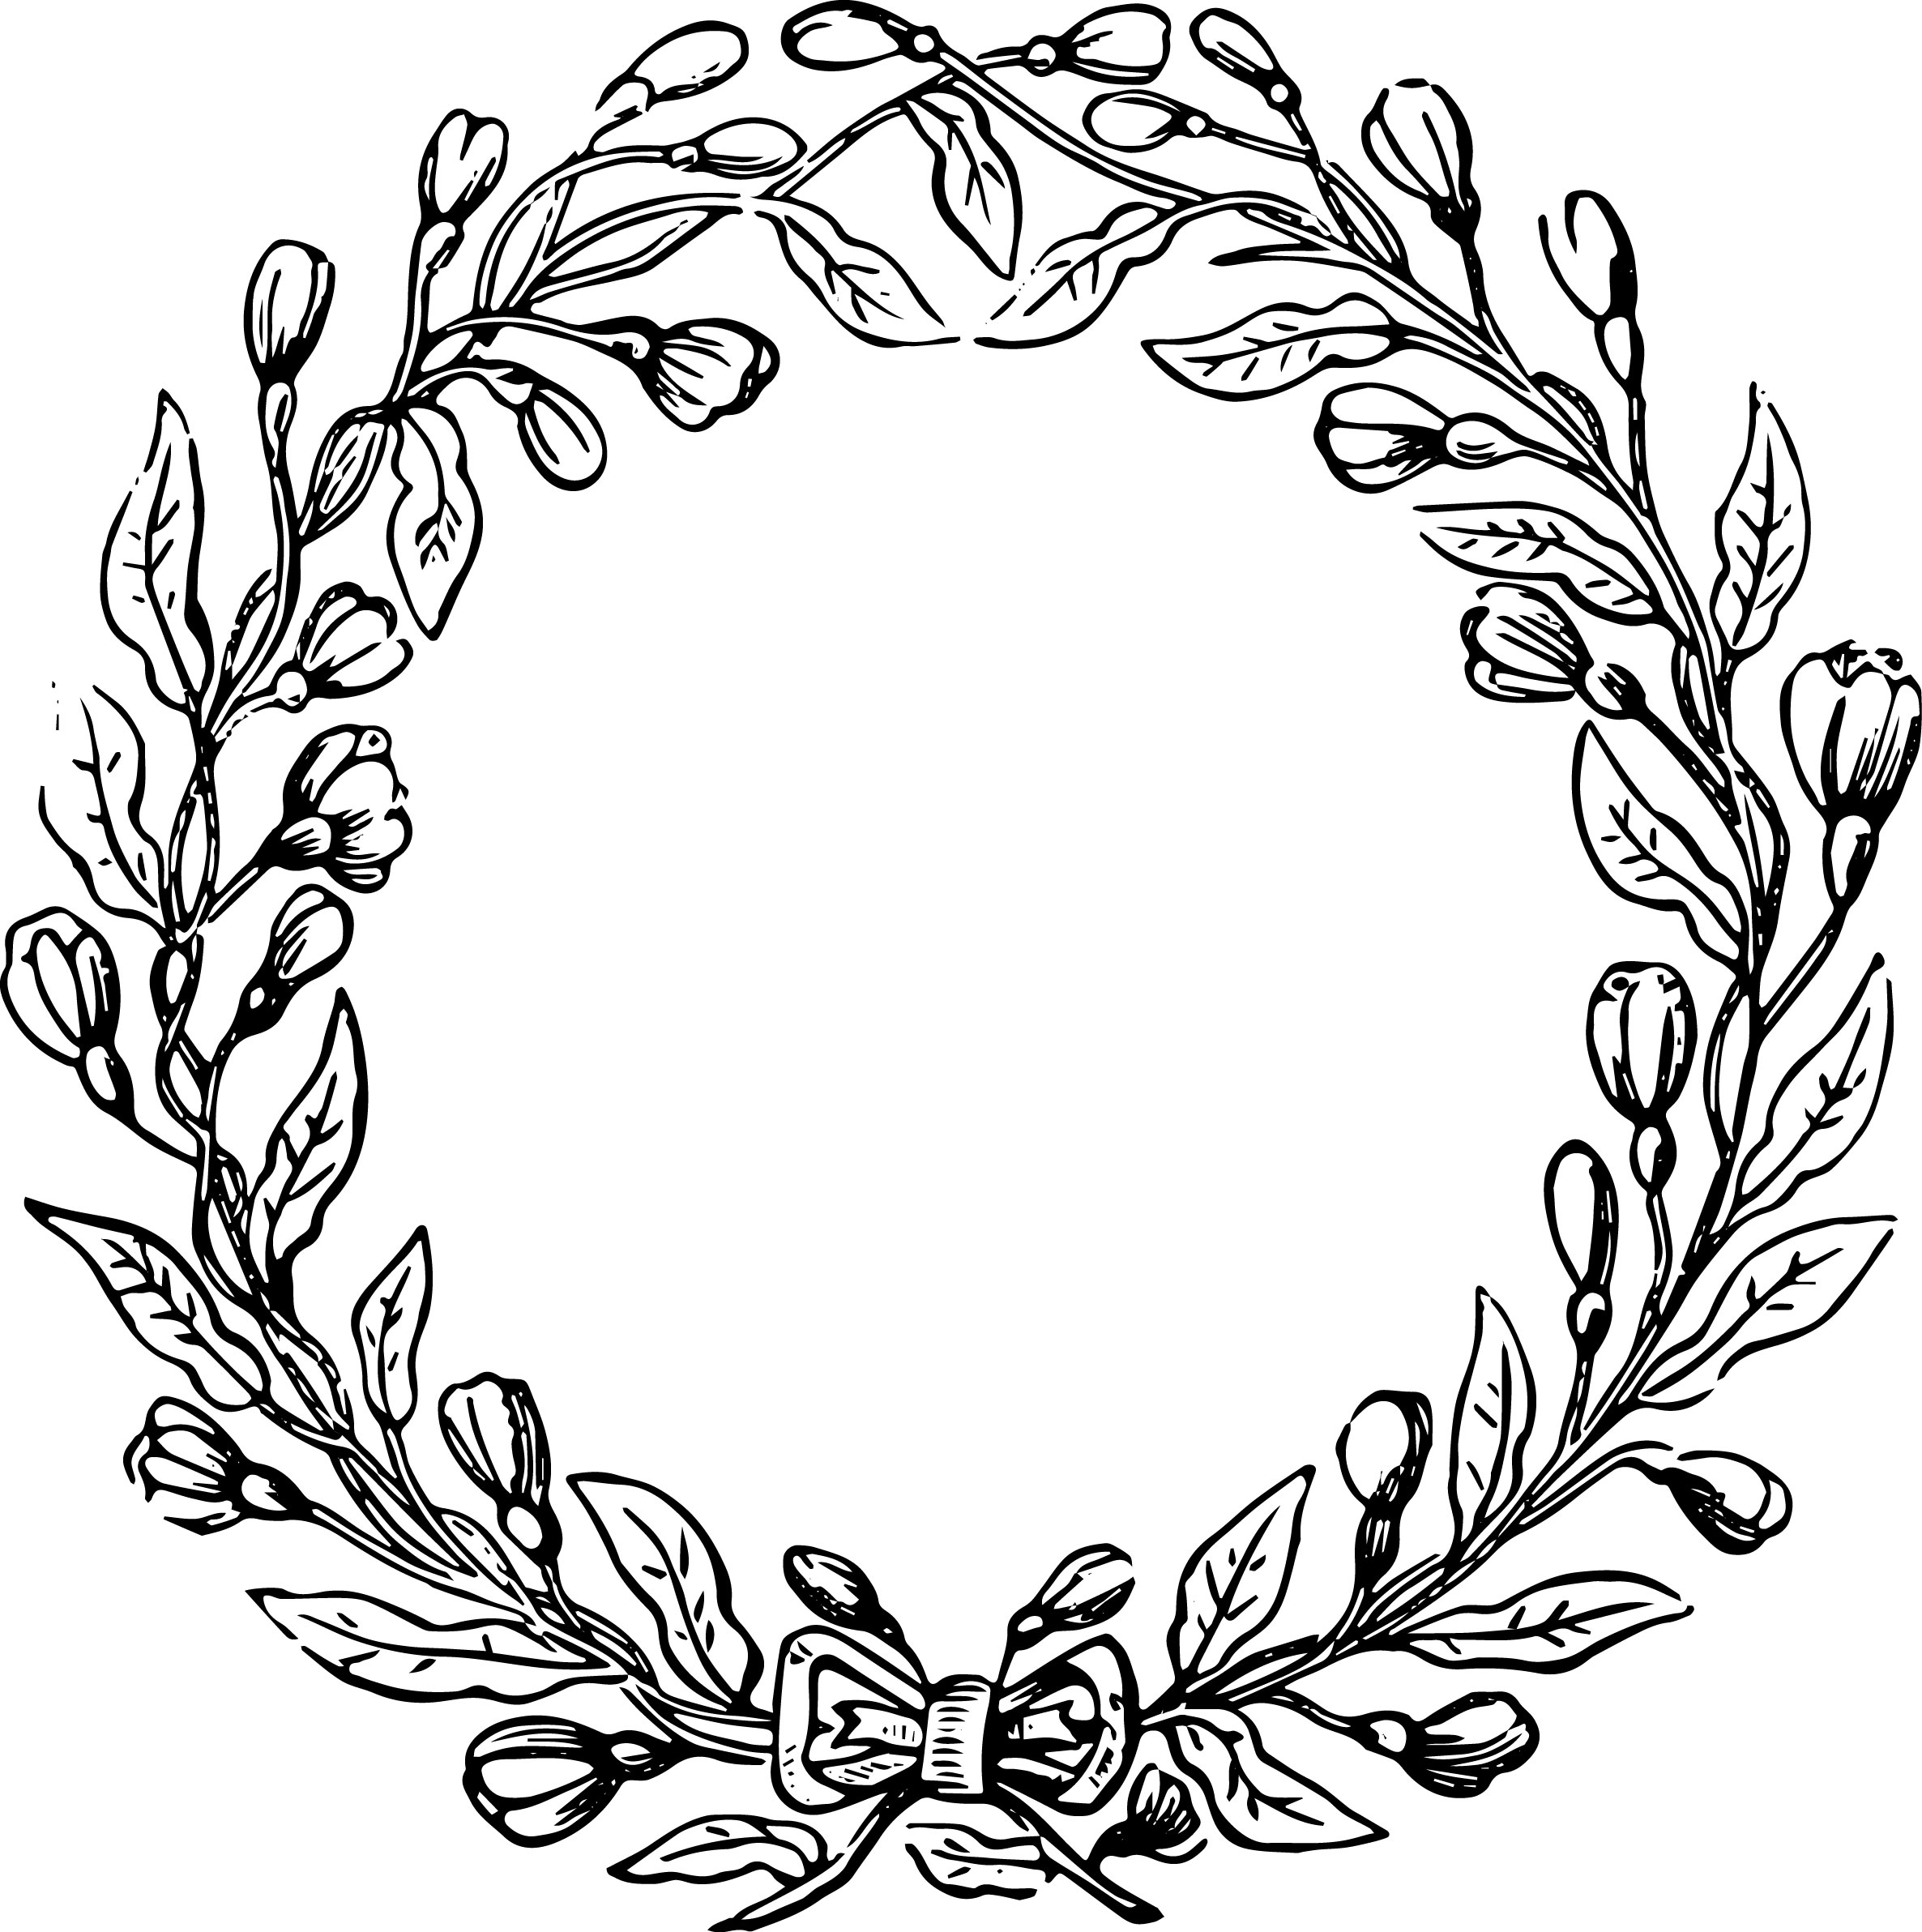 Free Garland Clipart Black And White, Download Free Clip Art.